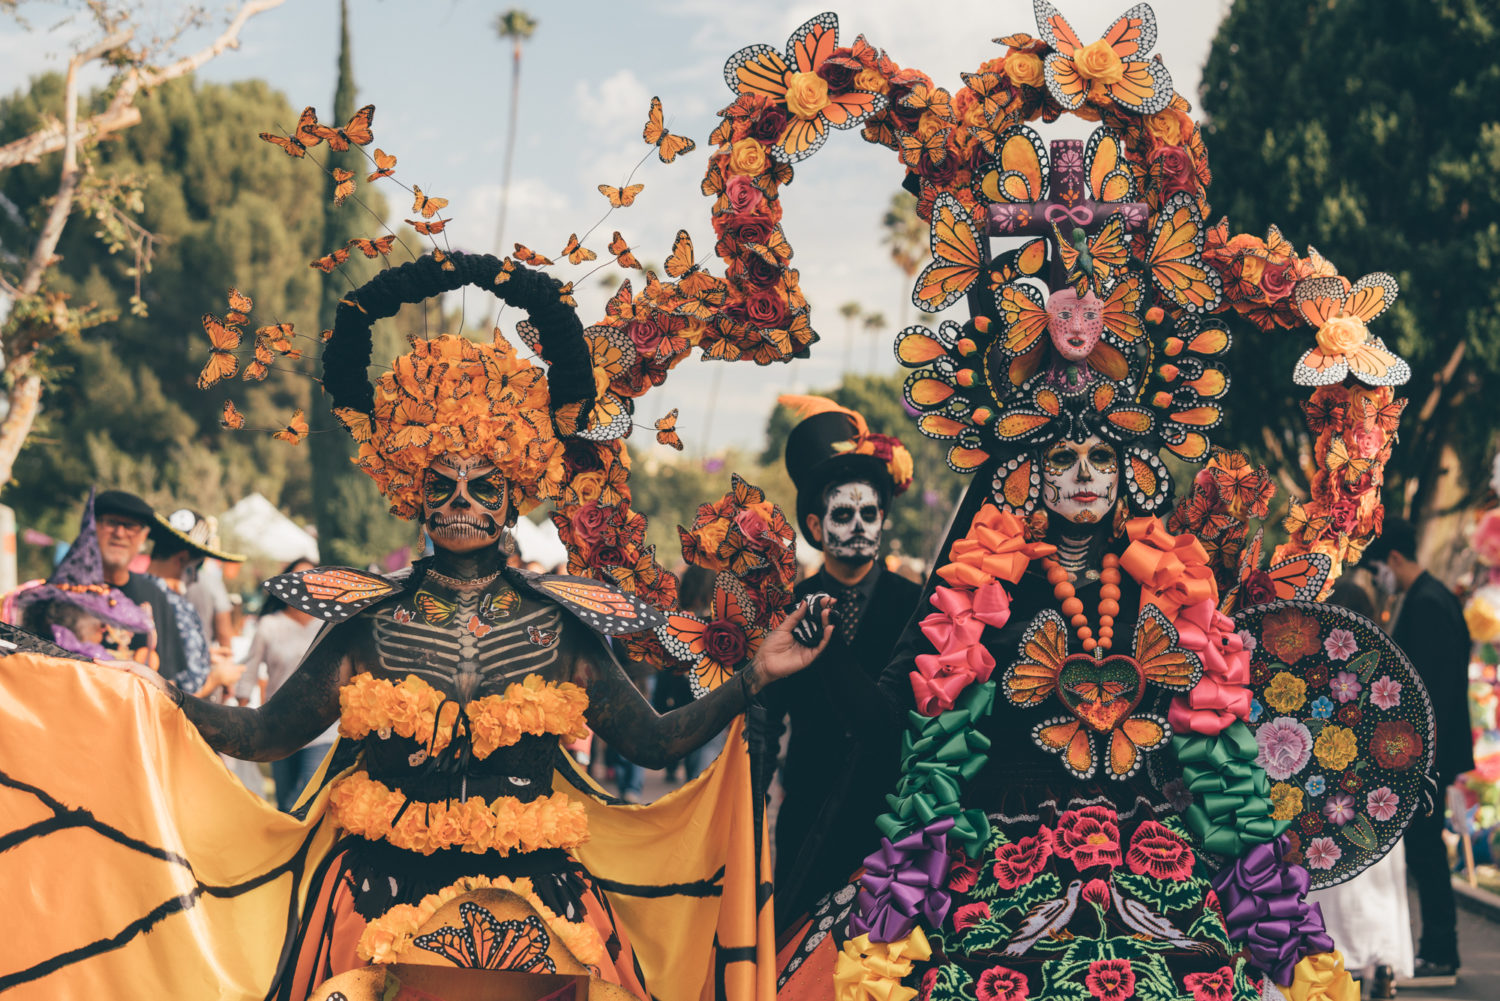 Celebrating Día de Los Muertos at Hollywood Forever Cemetery